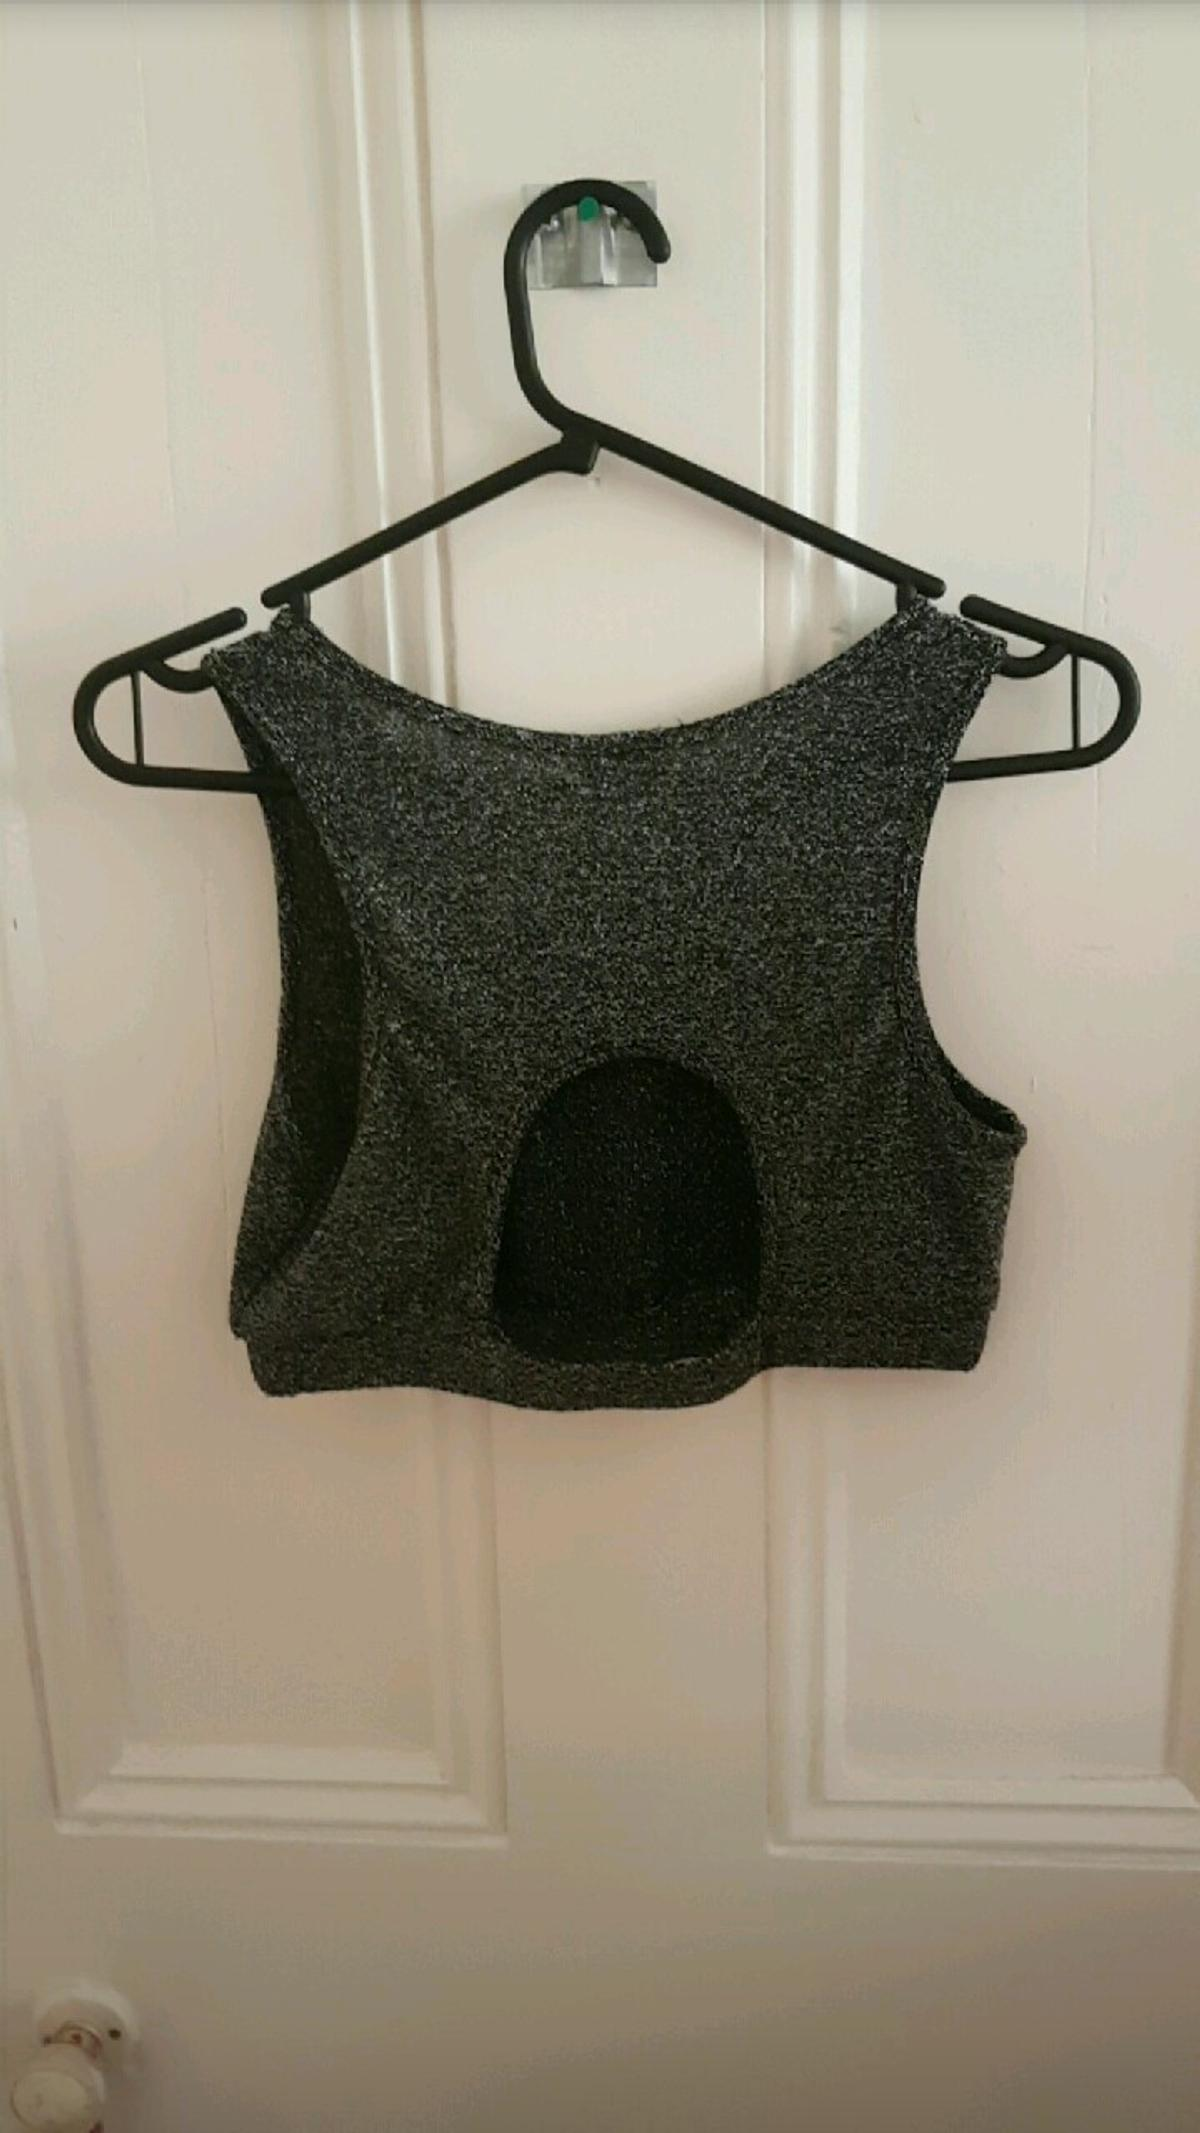 93f3f71b795 Glitter Crop Top in PL4 Plymouth for £2.50 for sale - Shpock